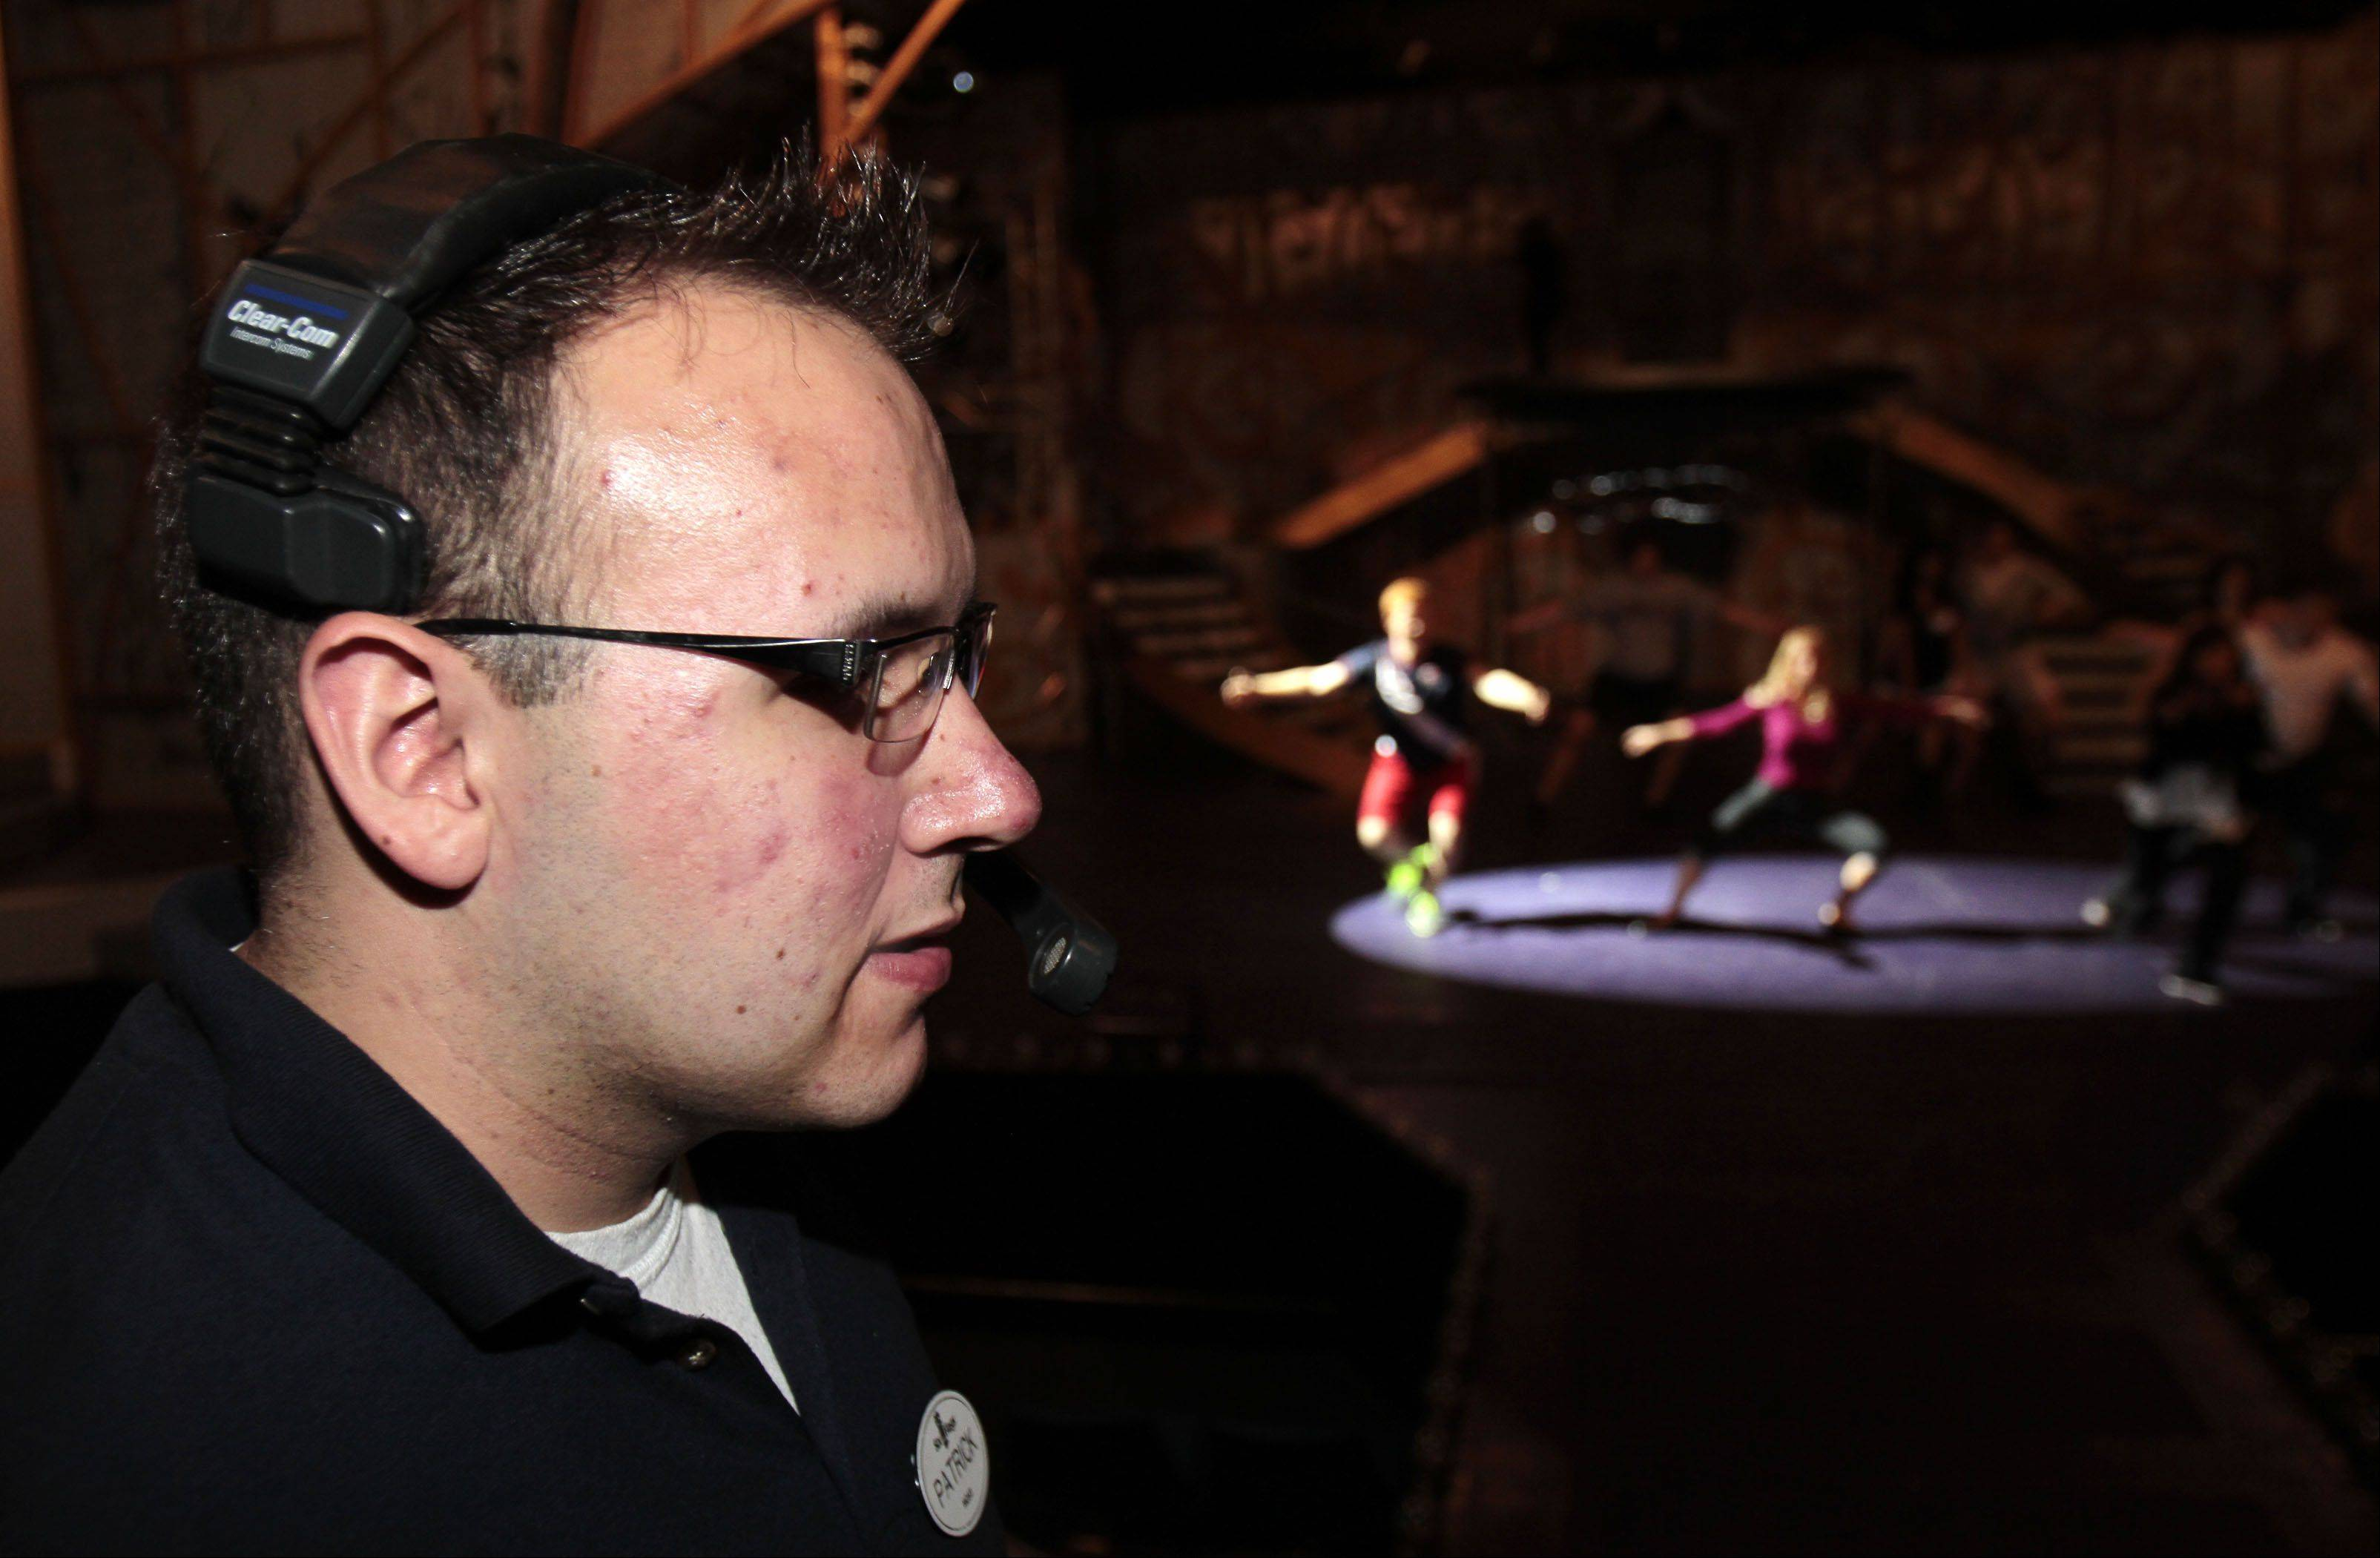 Technician Patrick Stewart of San Antonio, Texas checks the lighting as the cast members rehearse prior to the production of Pop Fusion.